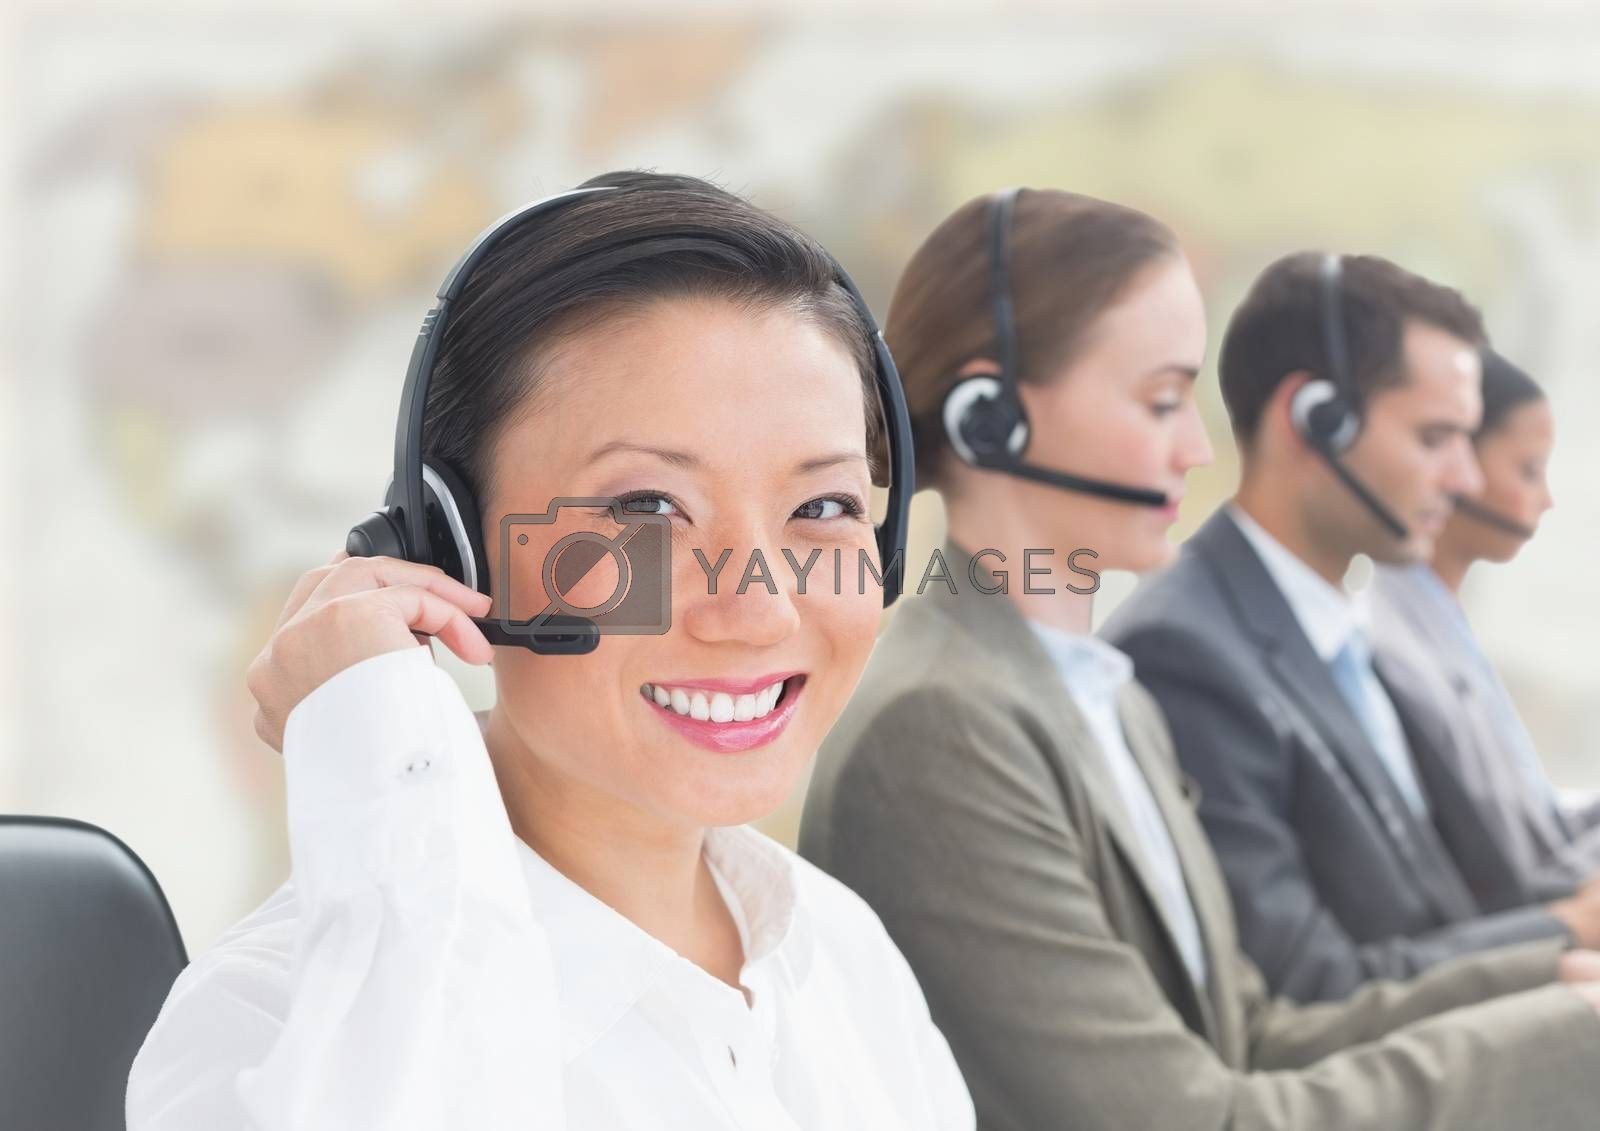 Digital composite of Travel agents with headsets against blurry map